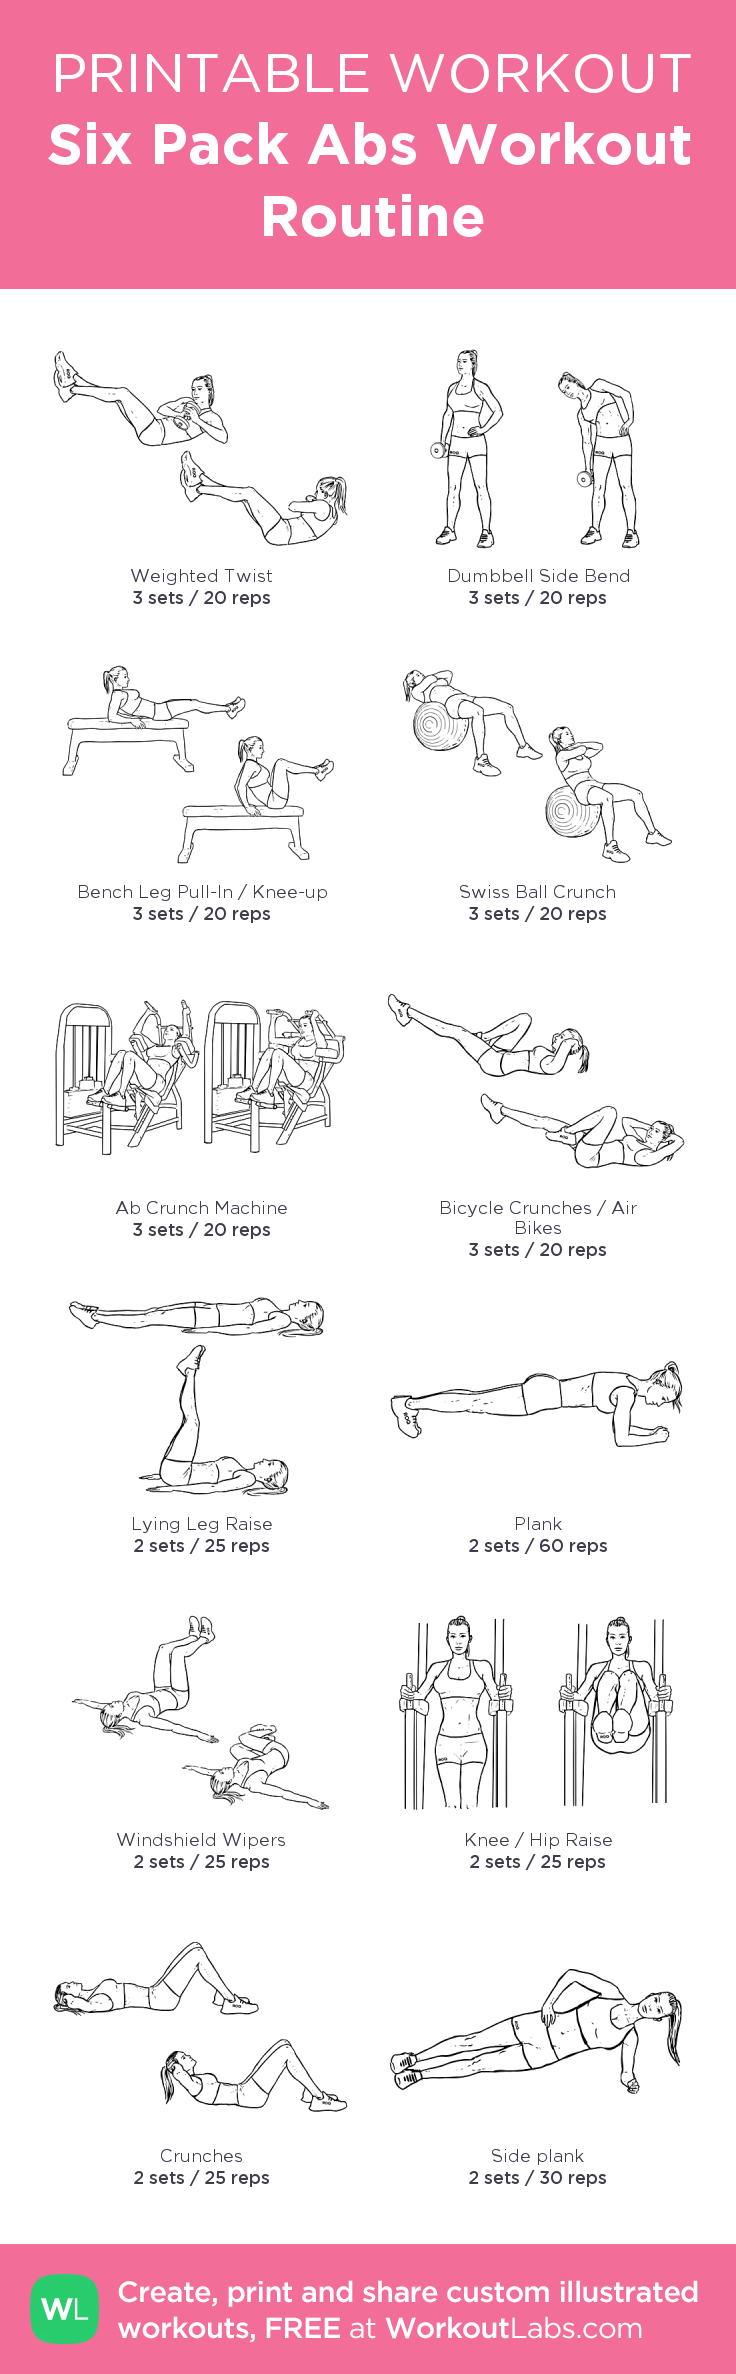 Daily Workout Routine For Six Pack Abs Yourviewsite Co